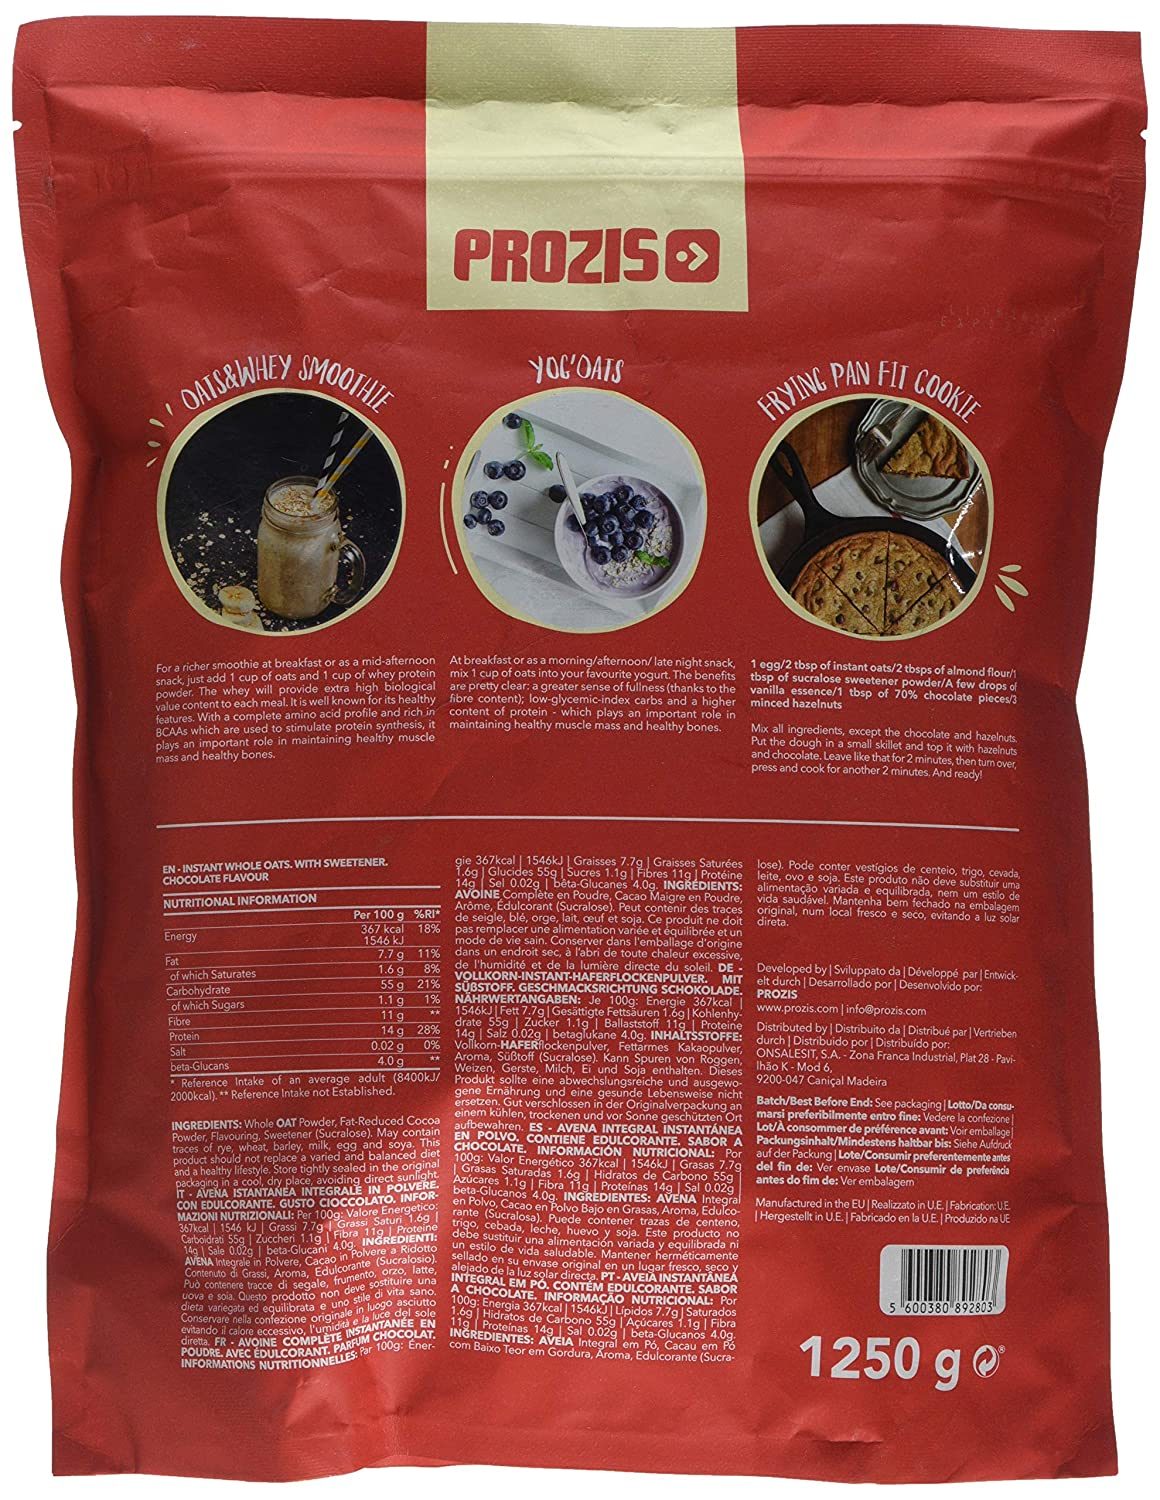 Prozis Instant Whole Oats, Sabor Chocolate - 1250 gr: Amazon.es: Salud y cuidado personal